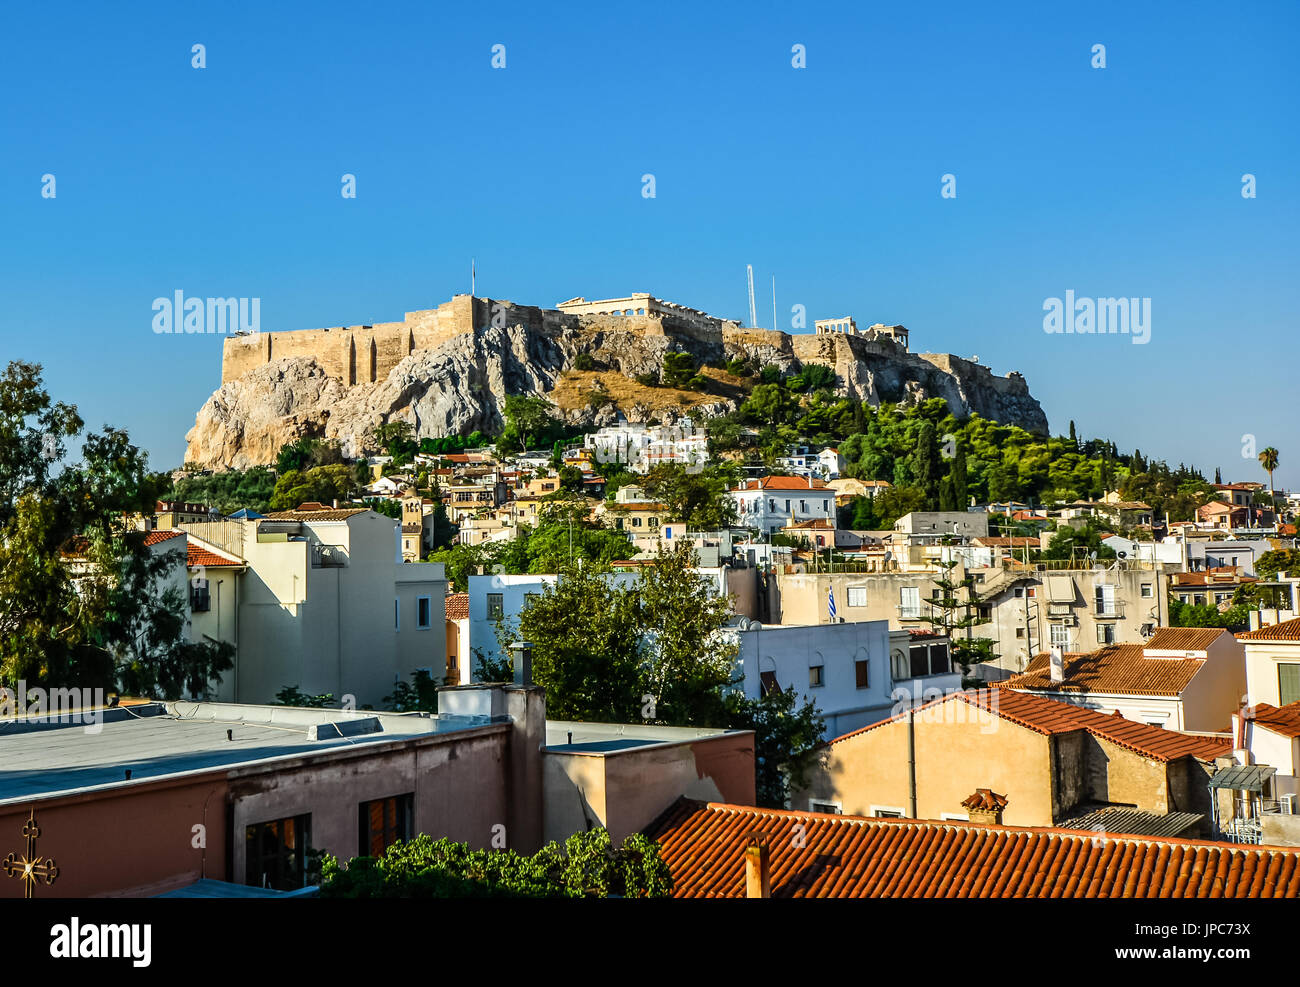 The ancient Parthenon on Acropolis Hill in Athens Greece taken from the rooftop of a city building on a hot summer day - Stock Image